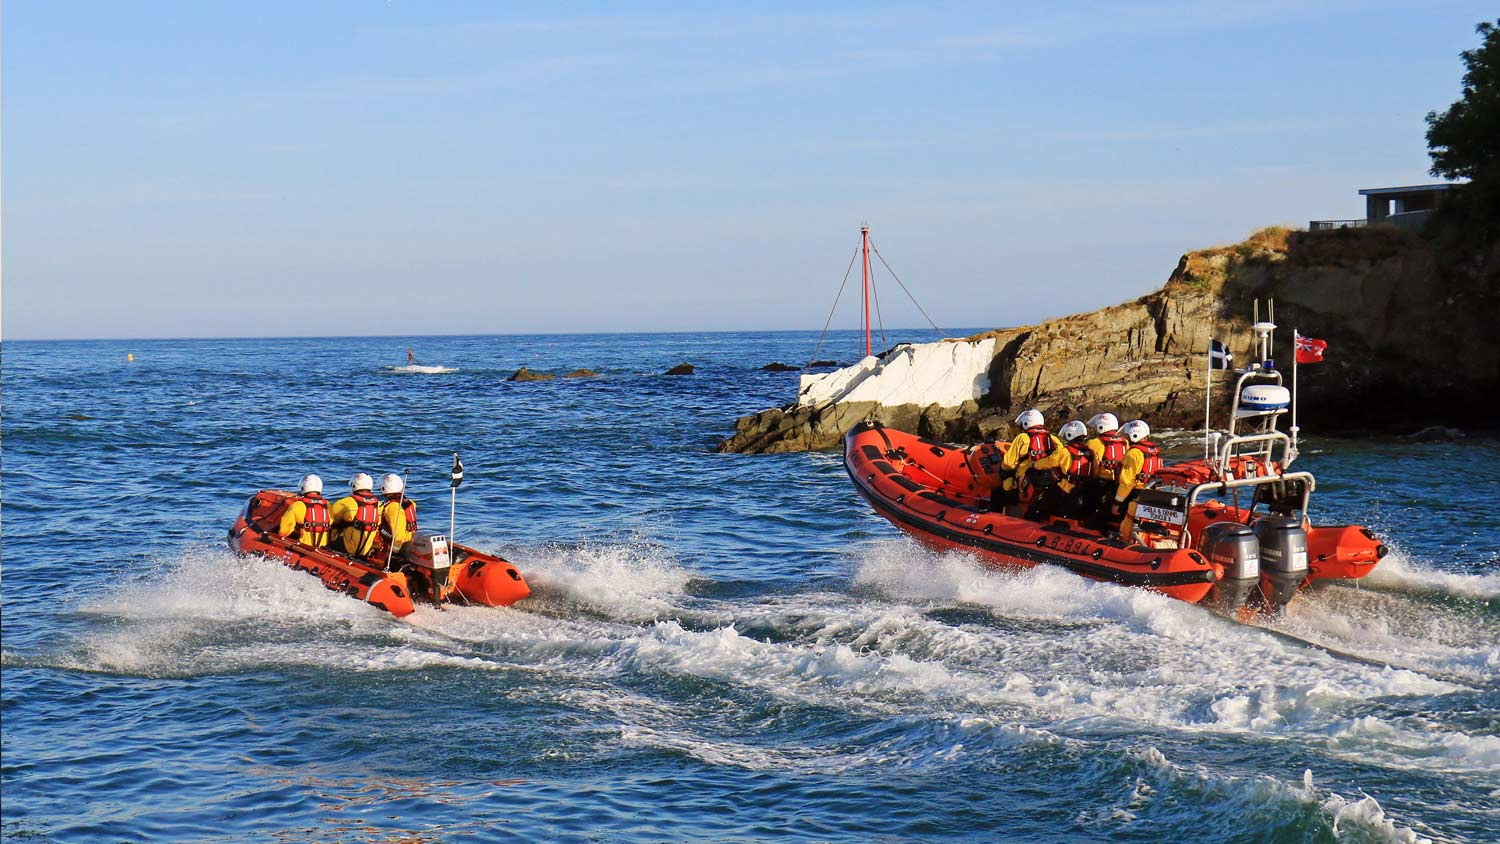 Looe lifeboats launch to the rescue